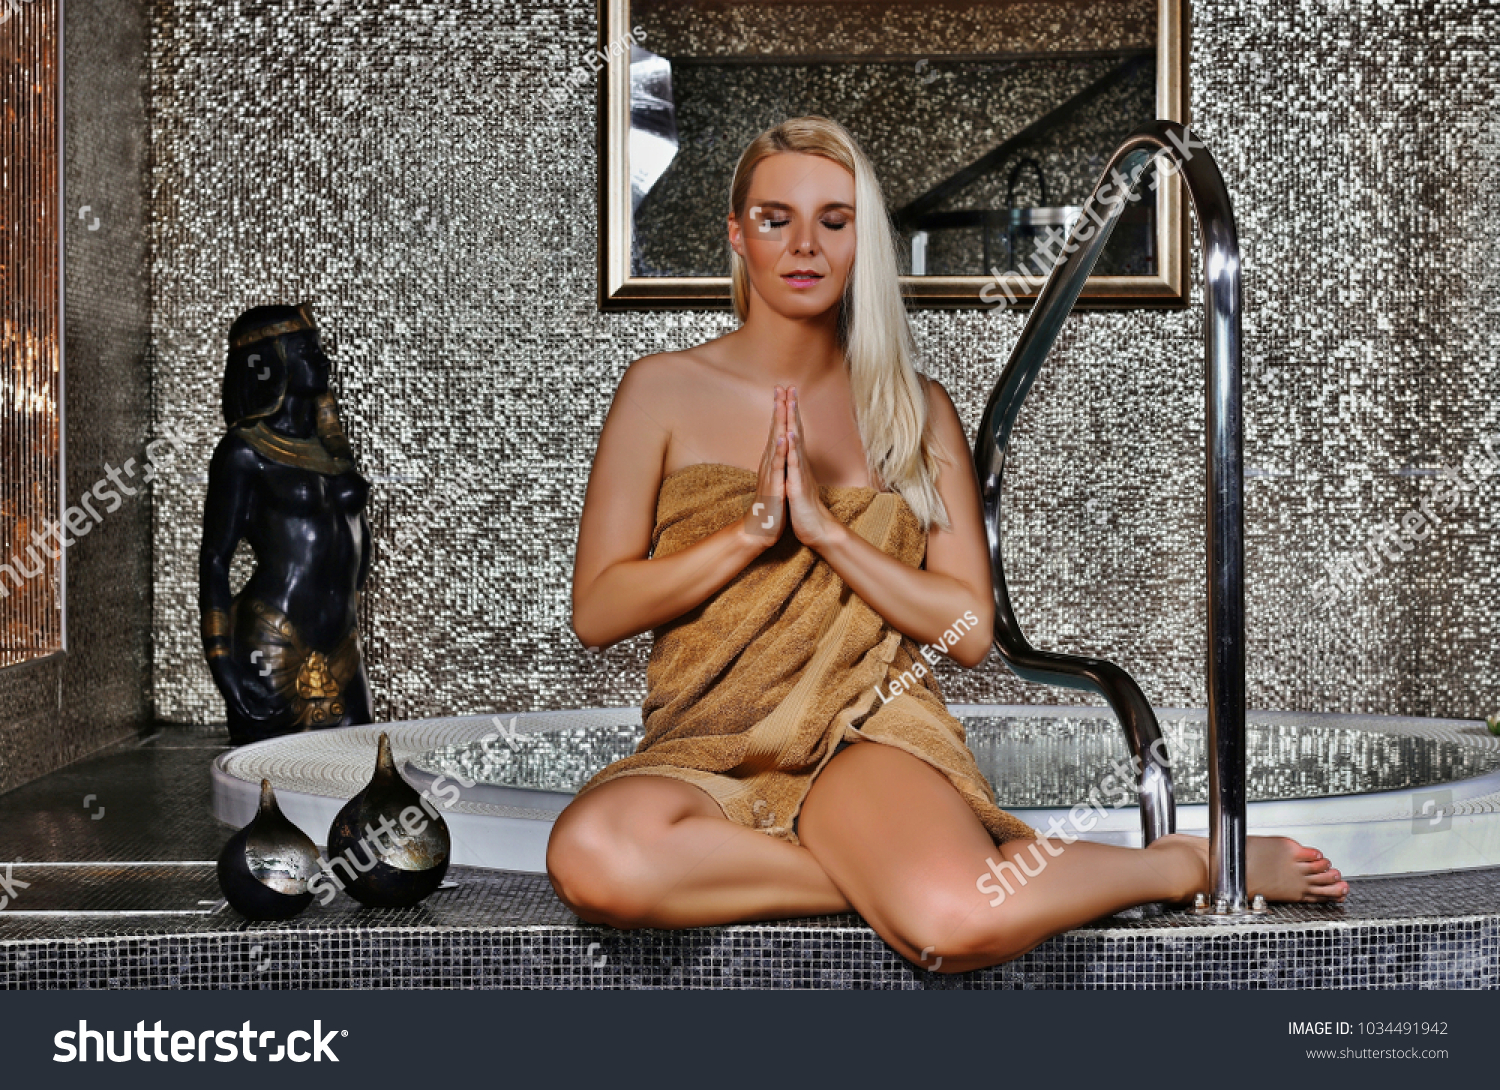 bbd8e15de Beautiful woman wearing towel sitting in a yoga position with hands  together